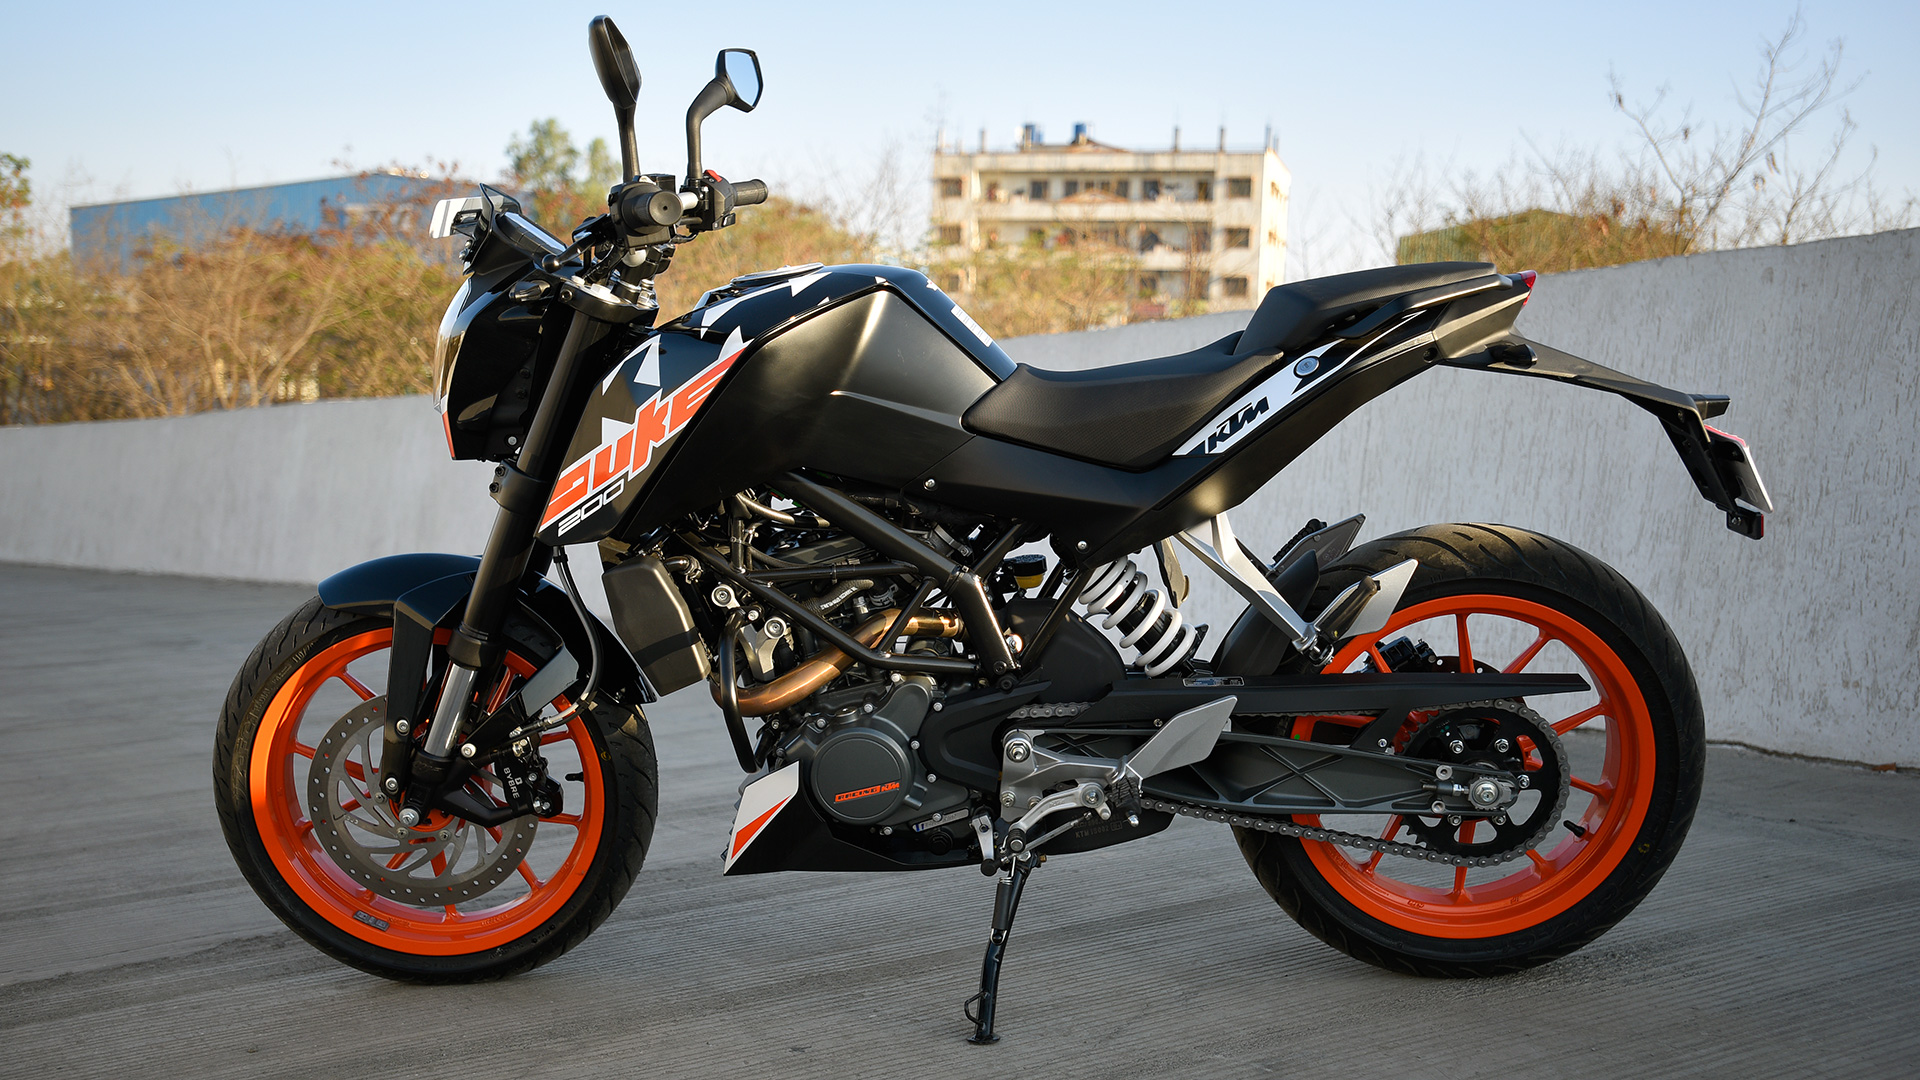 ktm 200 duke 2017 std bike photos overdrive. Black Bedroom Furniture Sets. Home Design Ideas